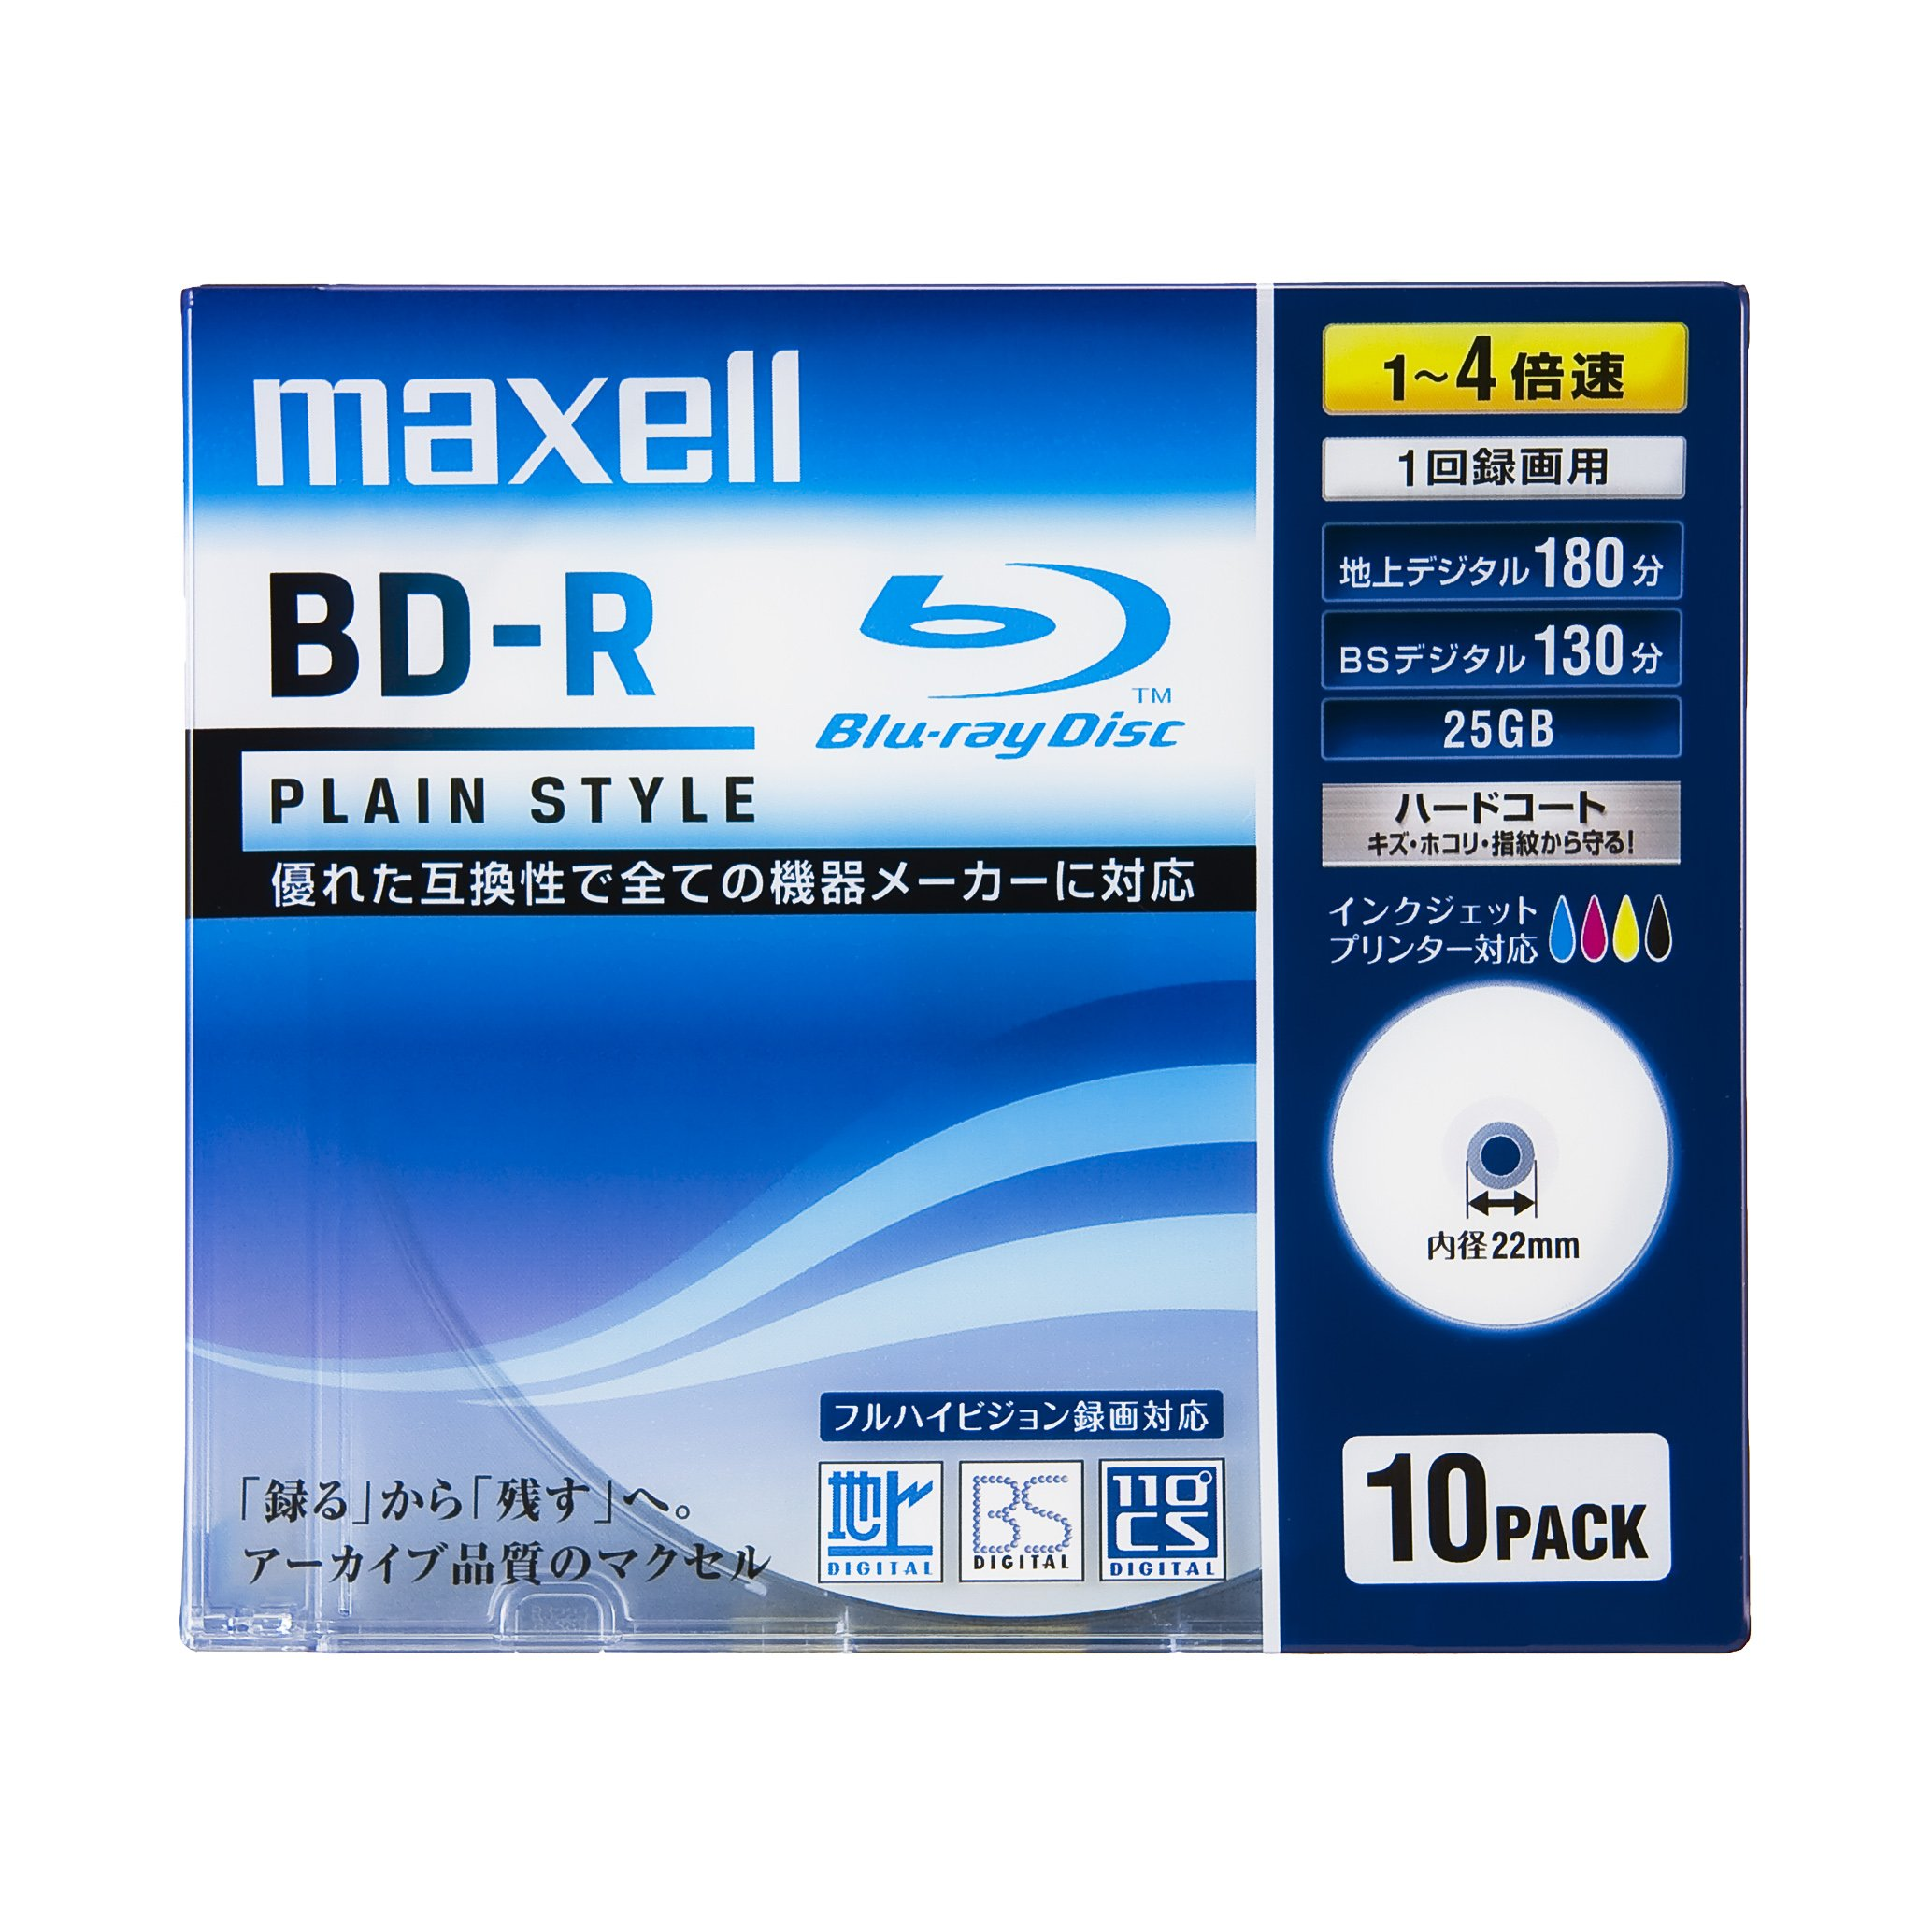 MAXELL Blue-ray BD-R Disk | 25GB 4x Speed 10 Pack - Plain Style - White Wide Area Ink-jet Printable Label (Japan Import)